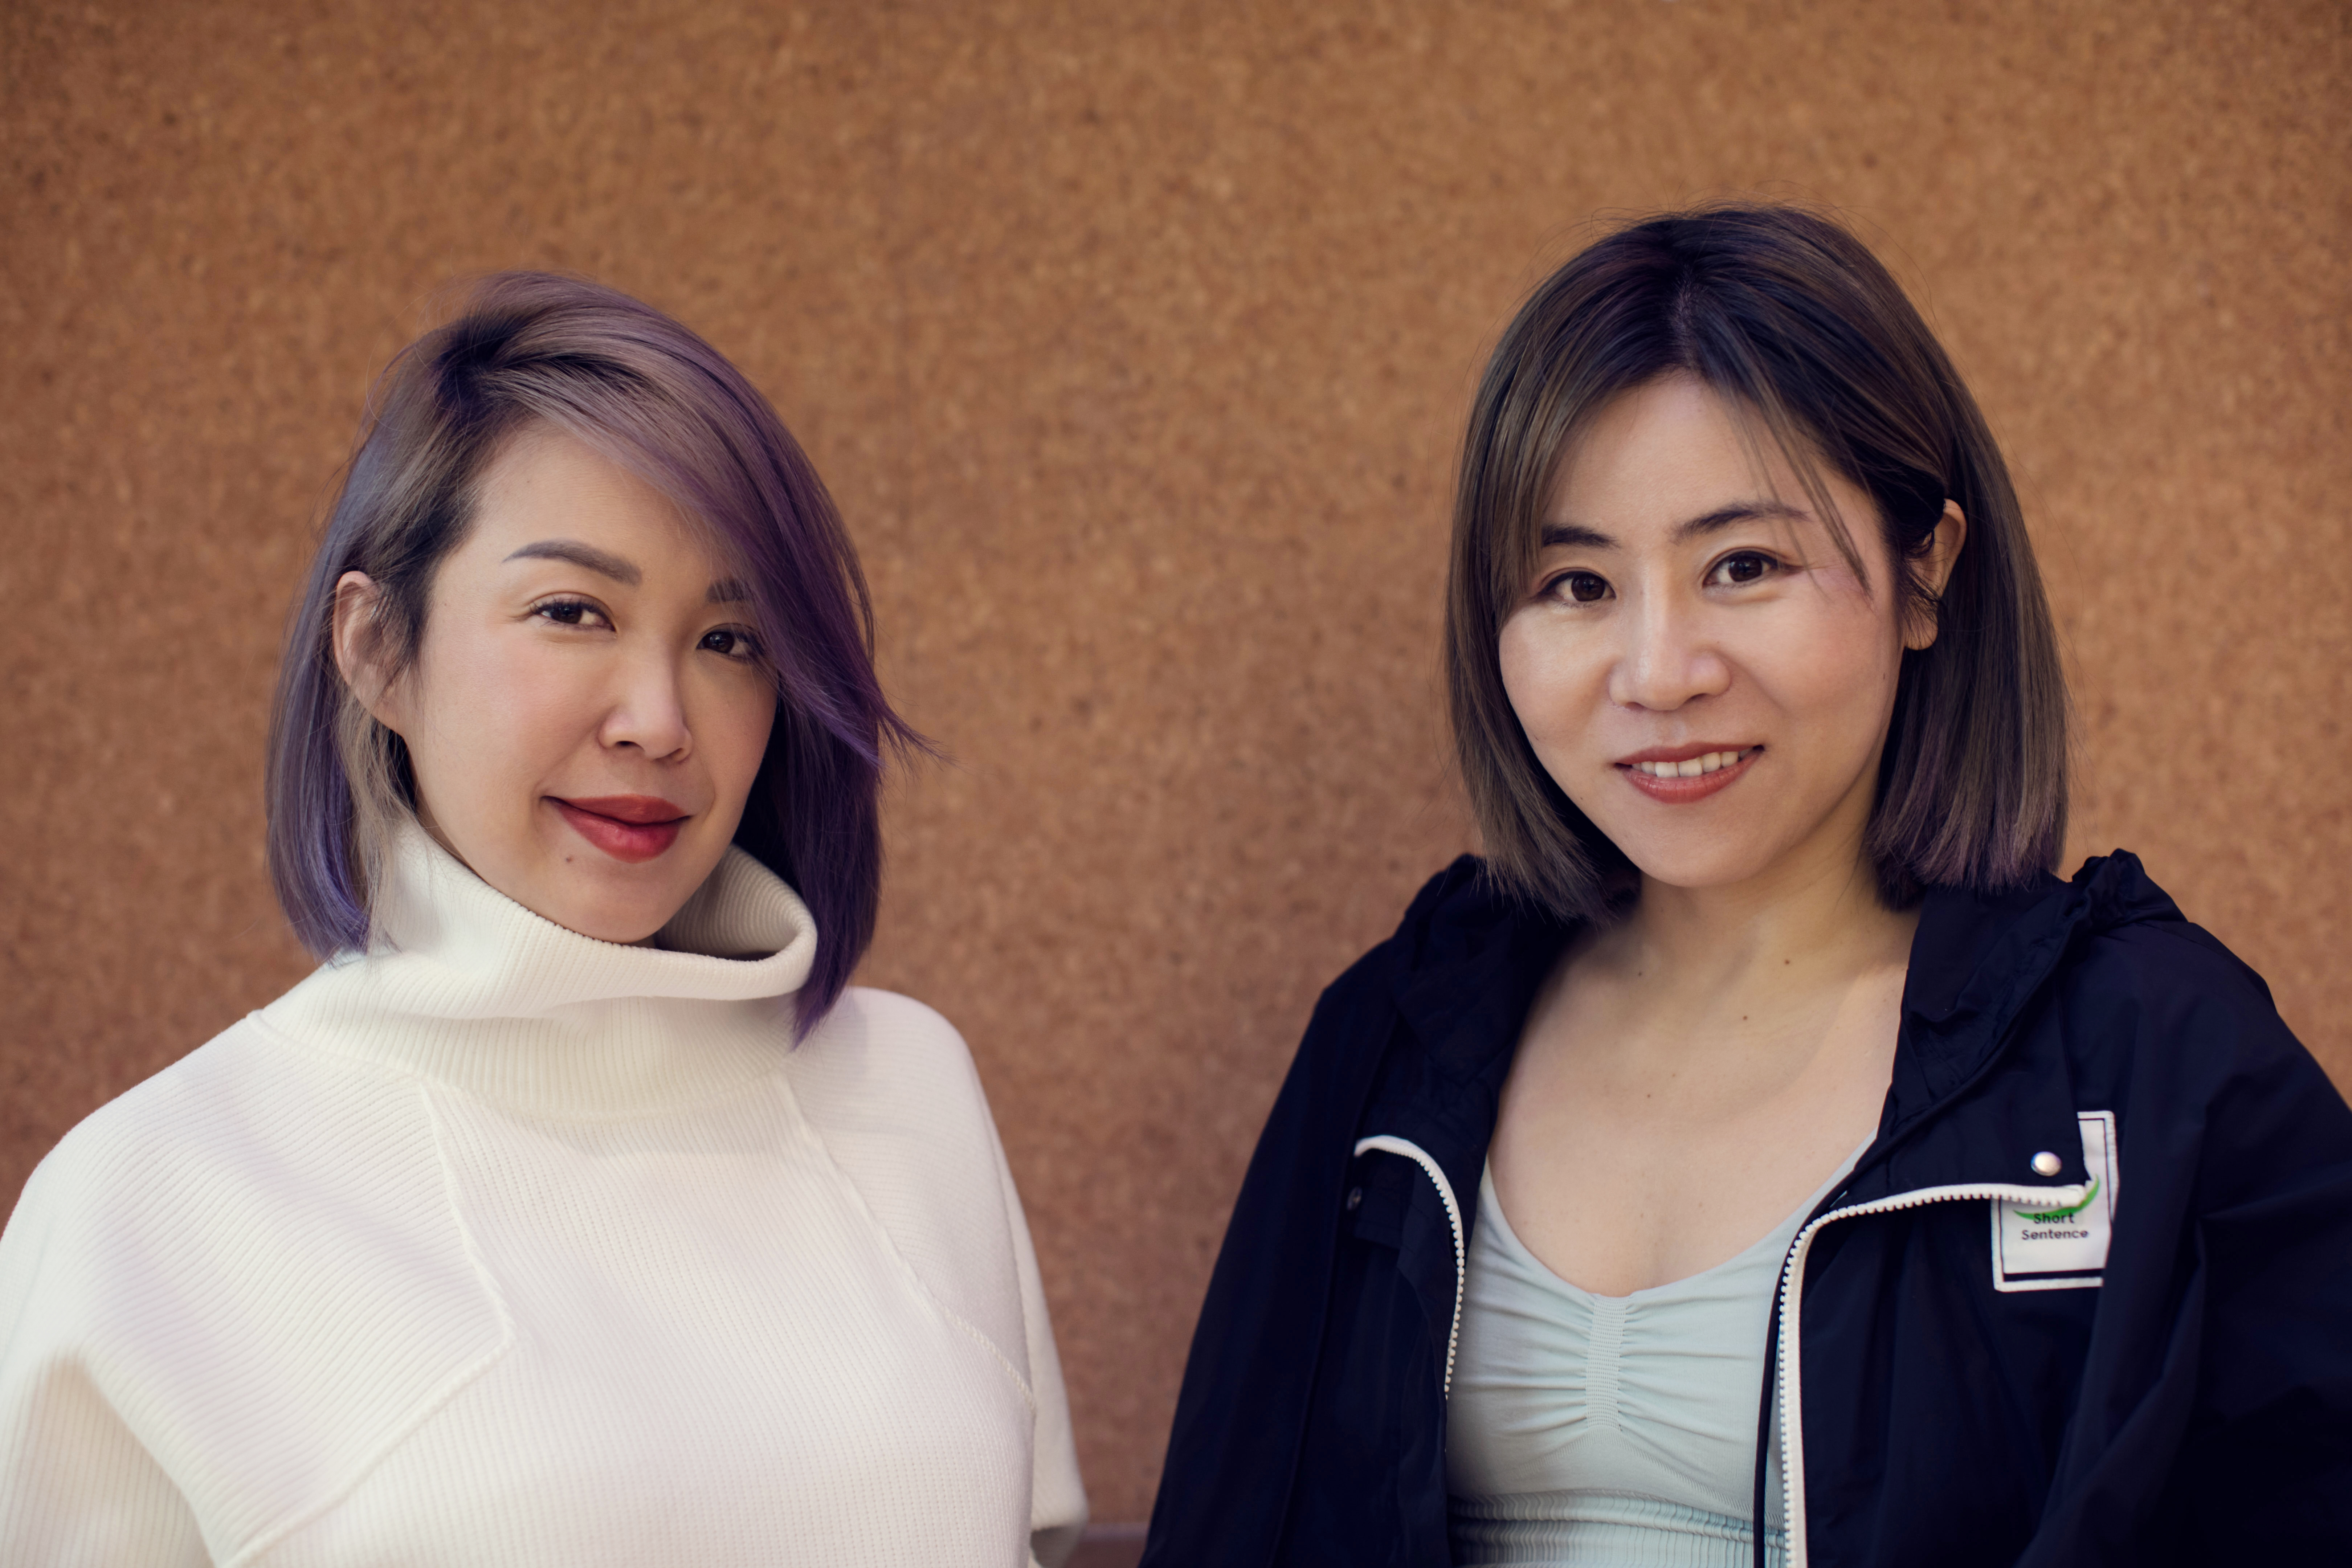 Maia Active founders Lisa Ou and Mia Wang.